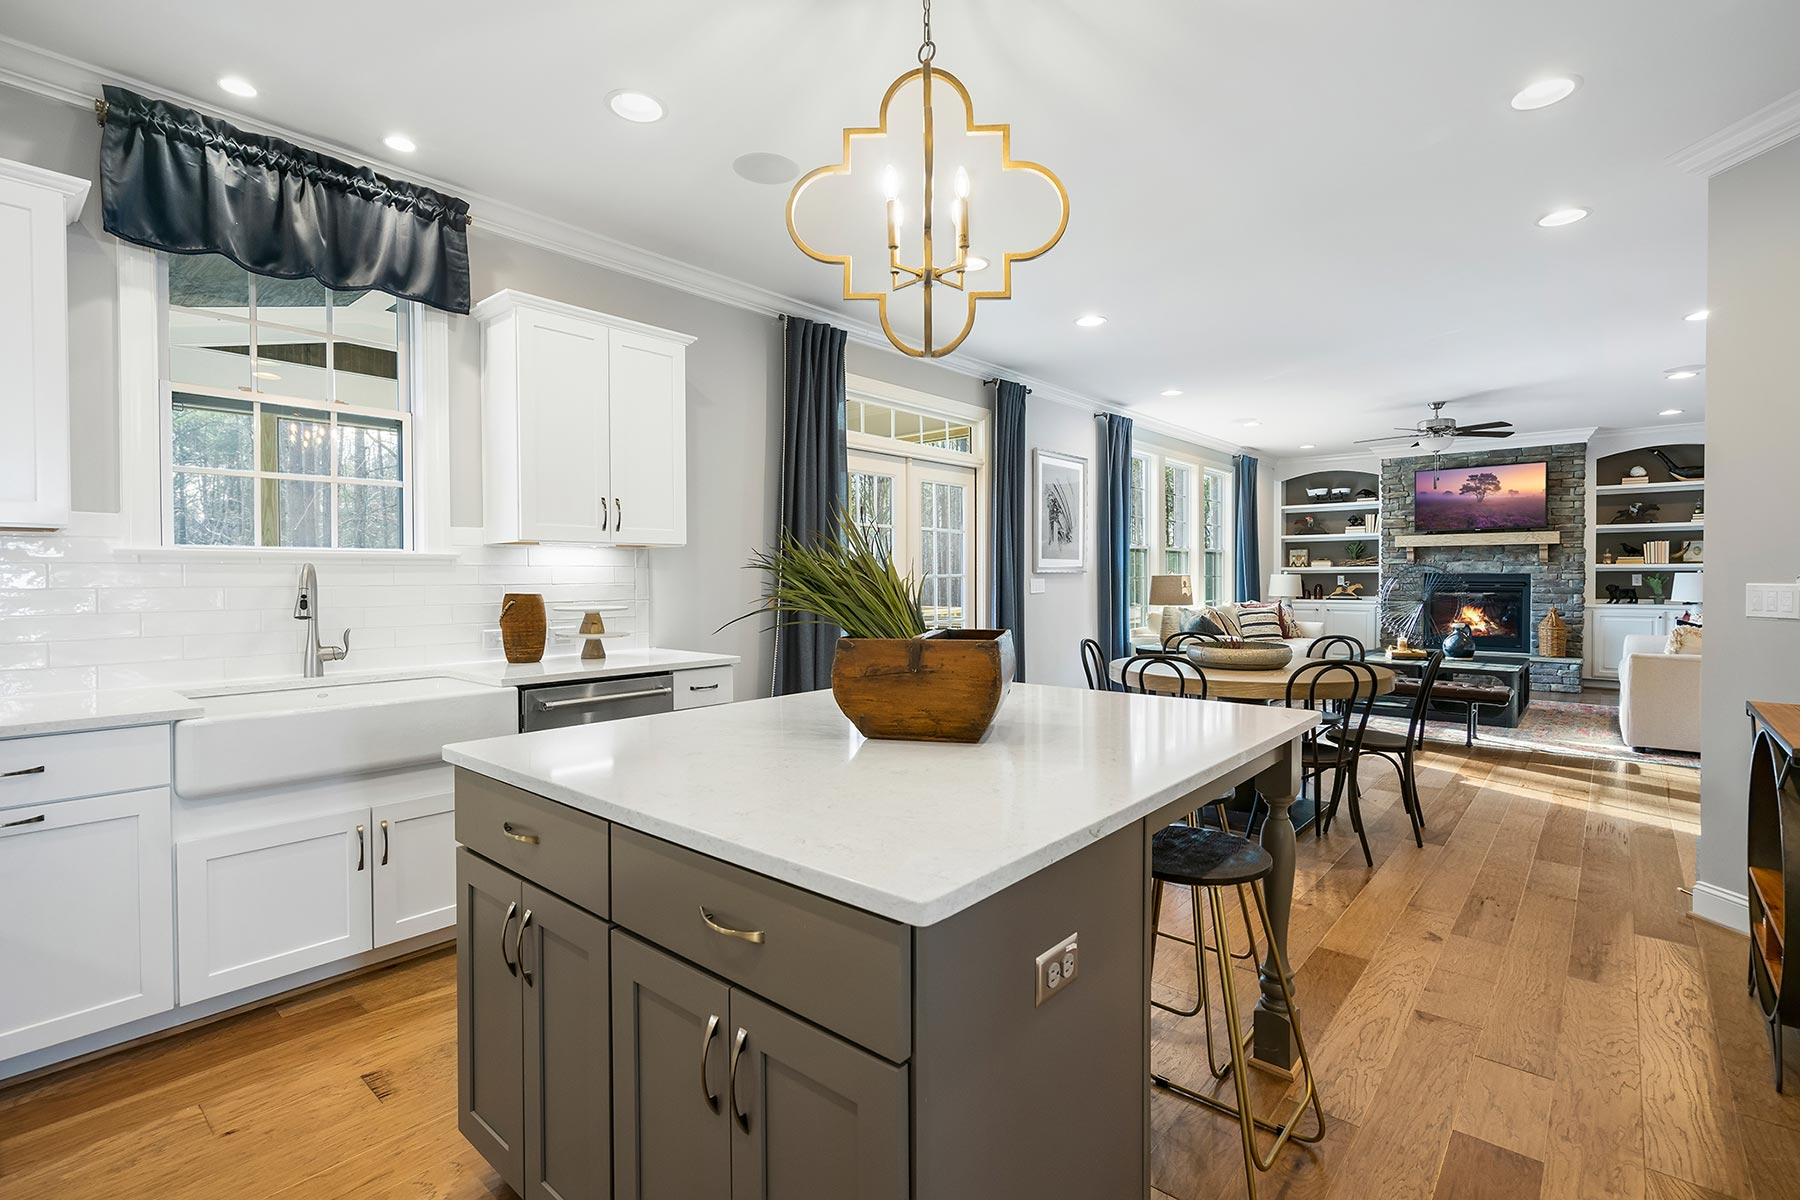 Edenton Plan Kitchen at Ballentine Place in Holly Springs North Carolina by Mattamy Homes